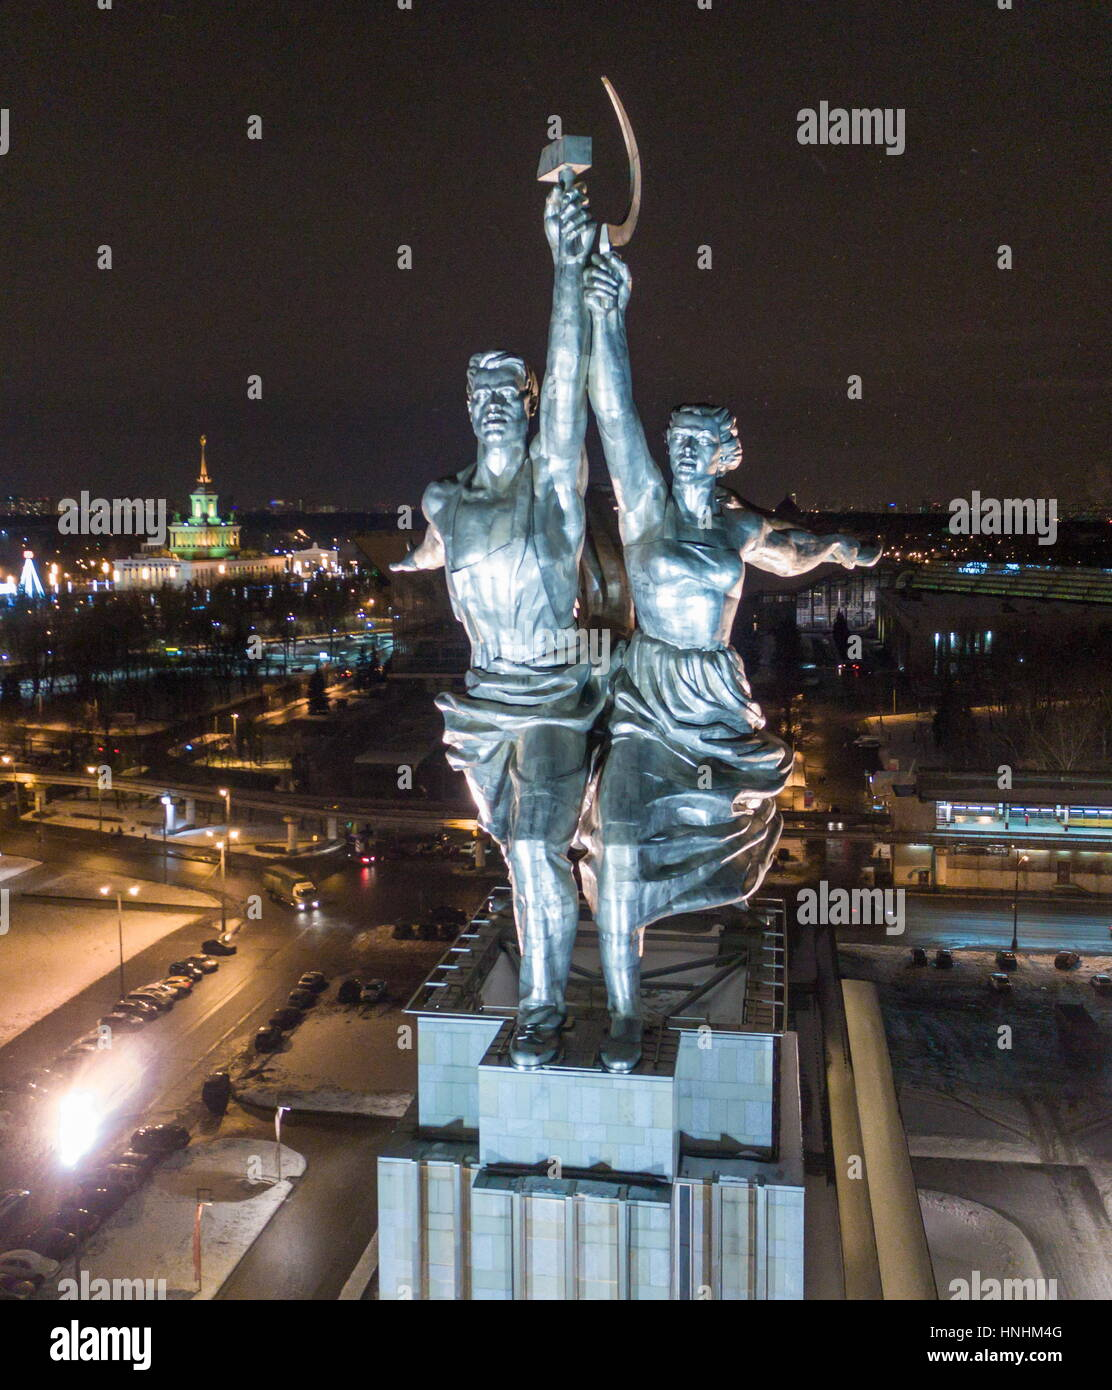 Moscow, Russia. 13th Feb, 2017. The statue of Worker and Kolkhoz Woman by Vera Mukhina lit at night, at the entrance - Stock Image